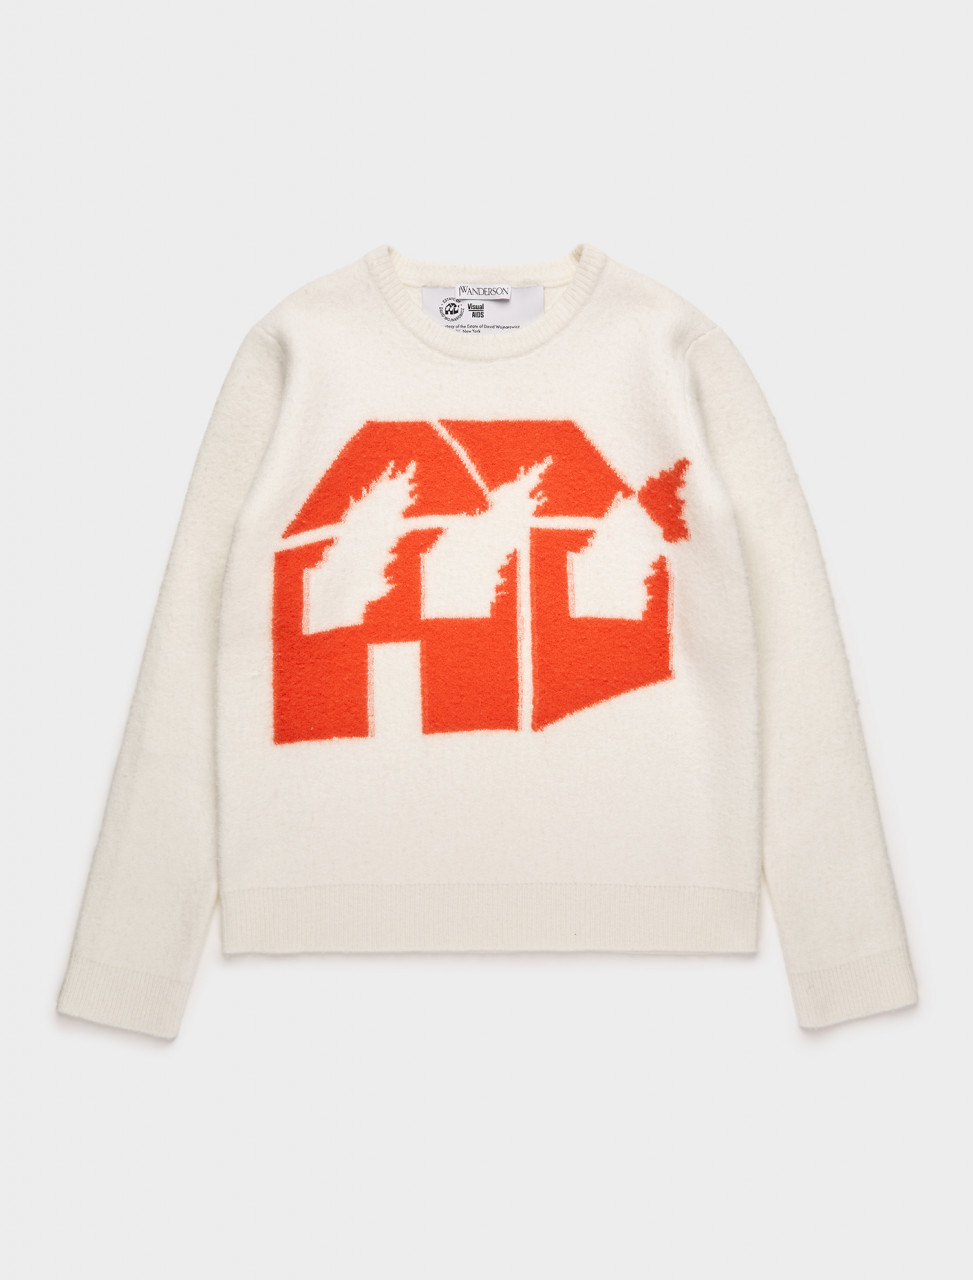 179-KW0322-YN0057-456 JW ANDERSON DAVID WOJNAROWICZ BURNING HOUSE JUMPER